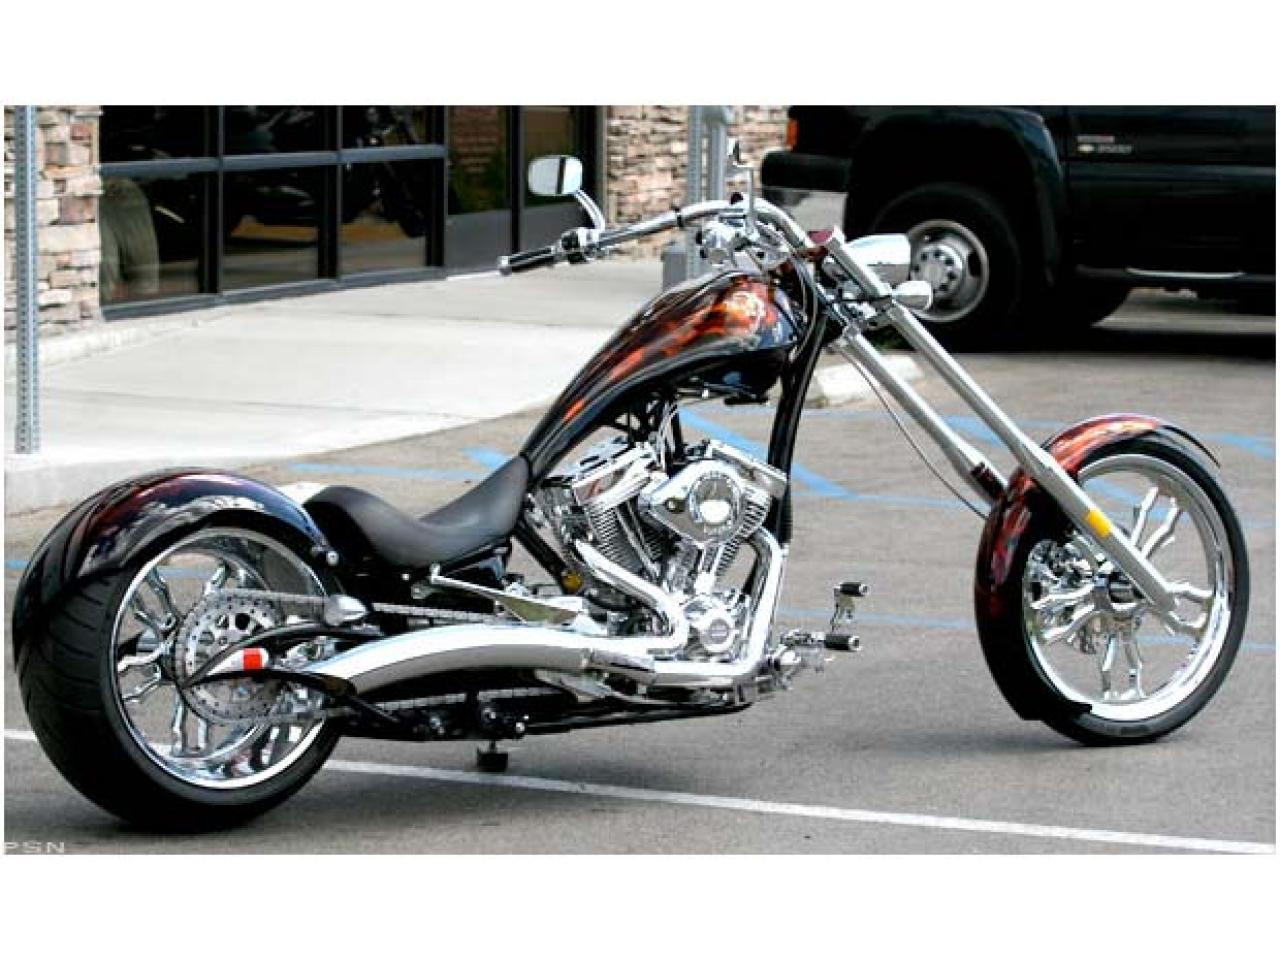 Big Bear Choppers Sled ProStreet 114 X-Wedge 2009 images #63884